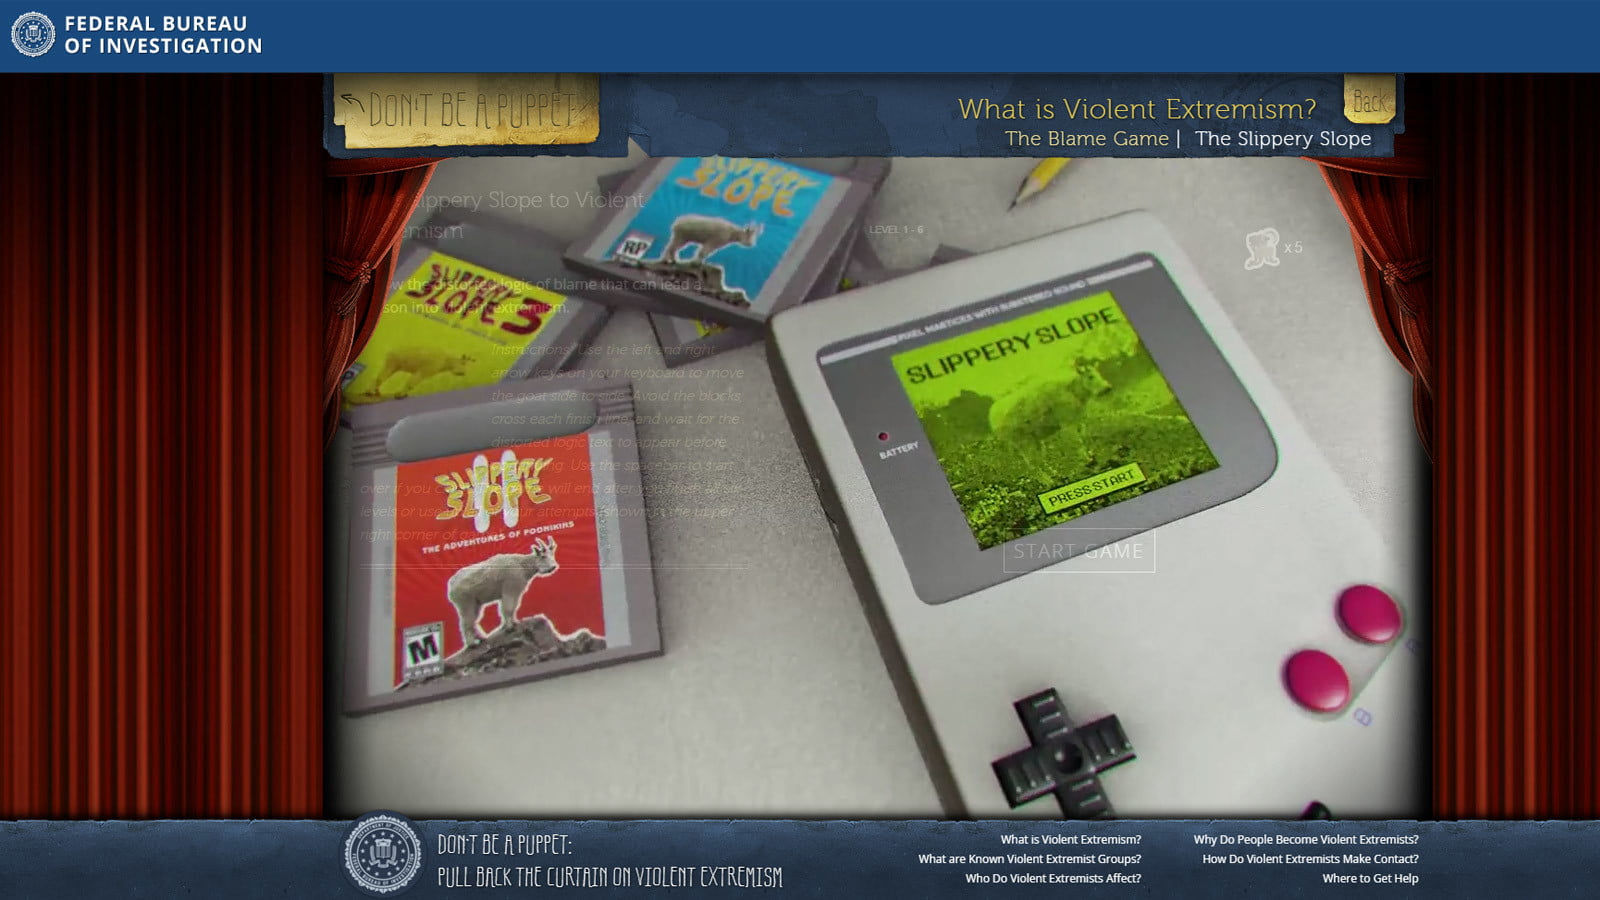 fbi anti extremism site targets teens but misses the mark fbisite02